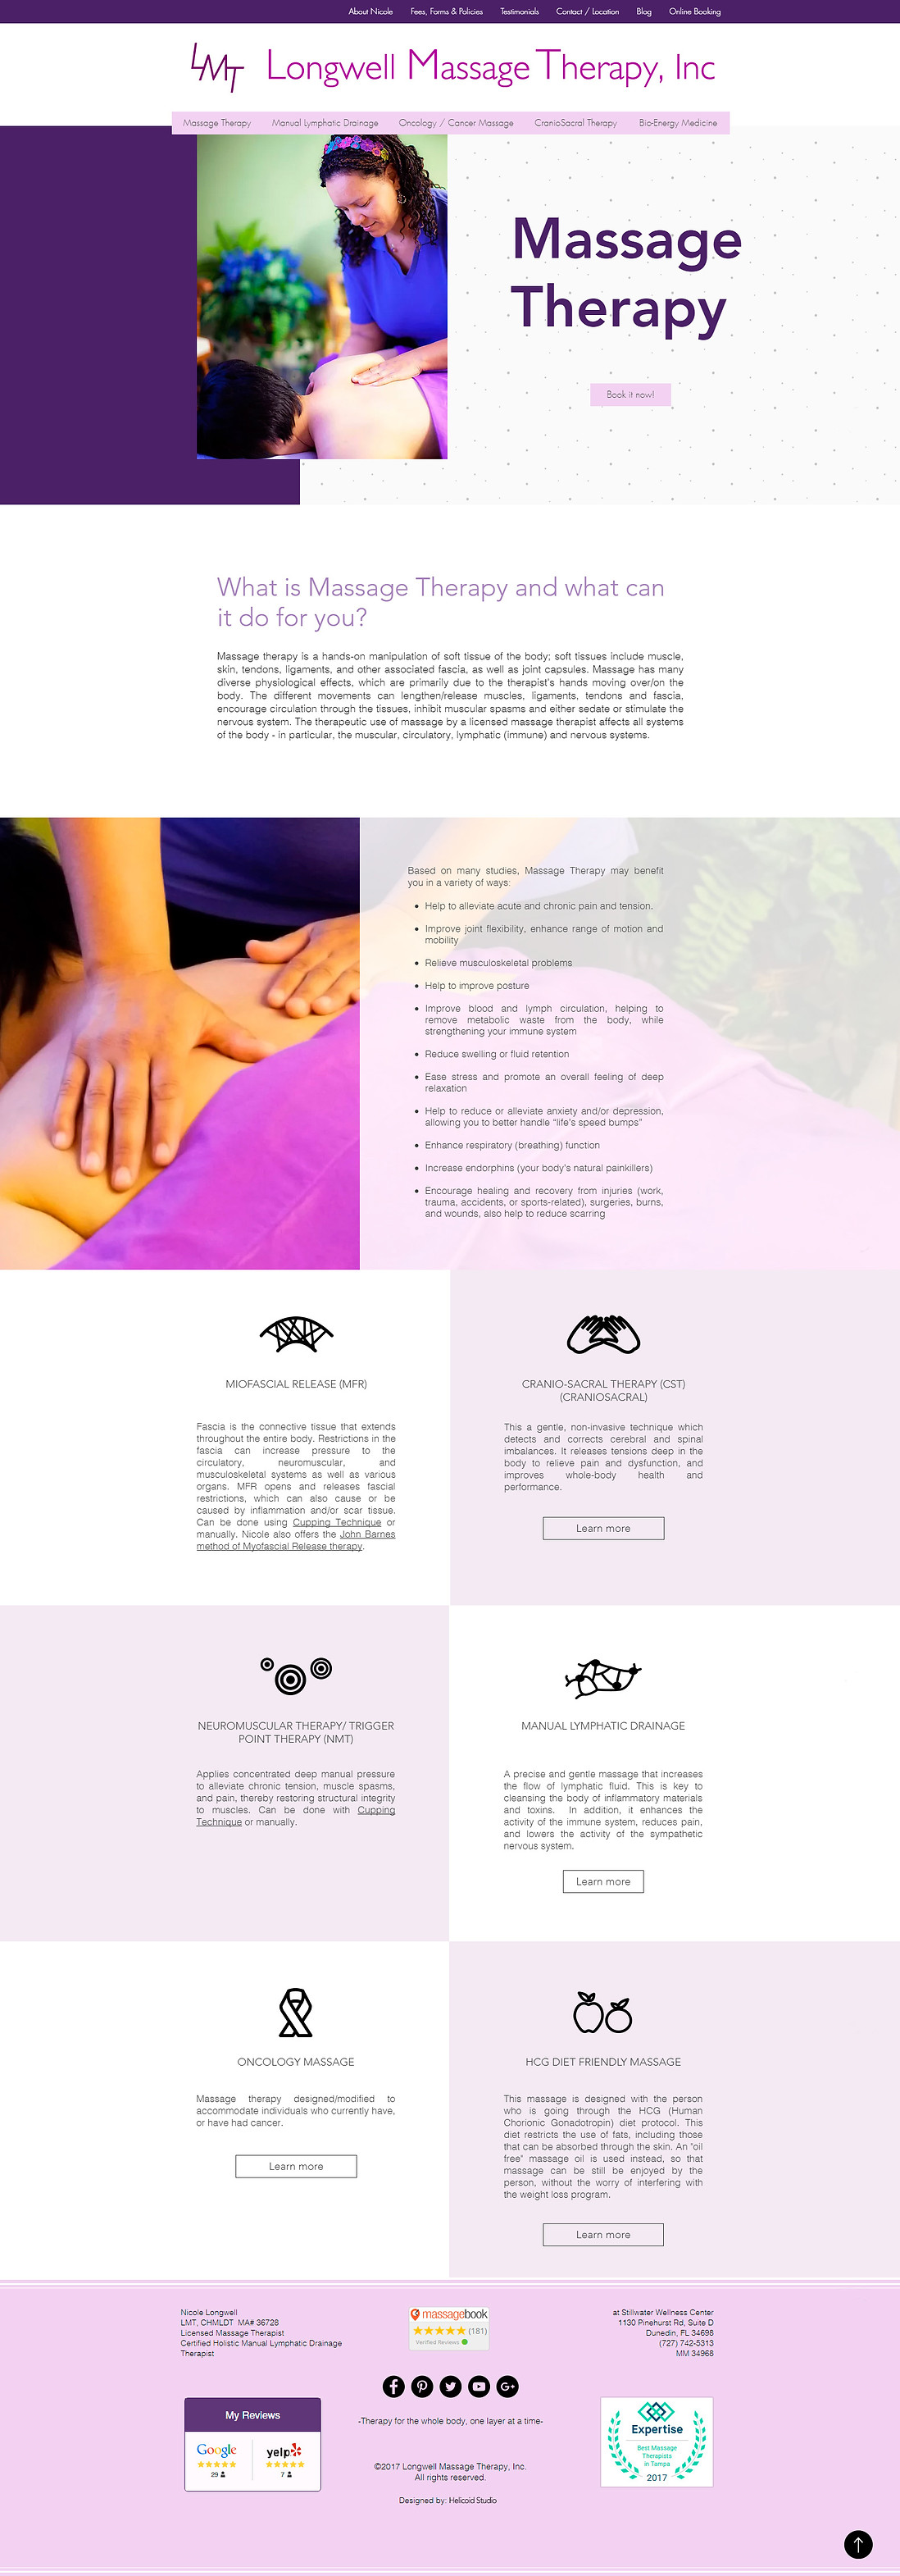 LMT Website Design Massage Therapy Page